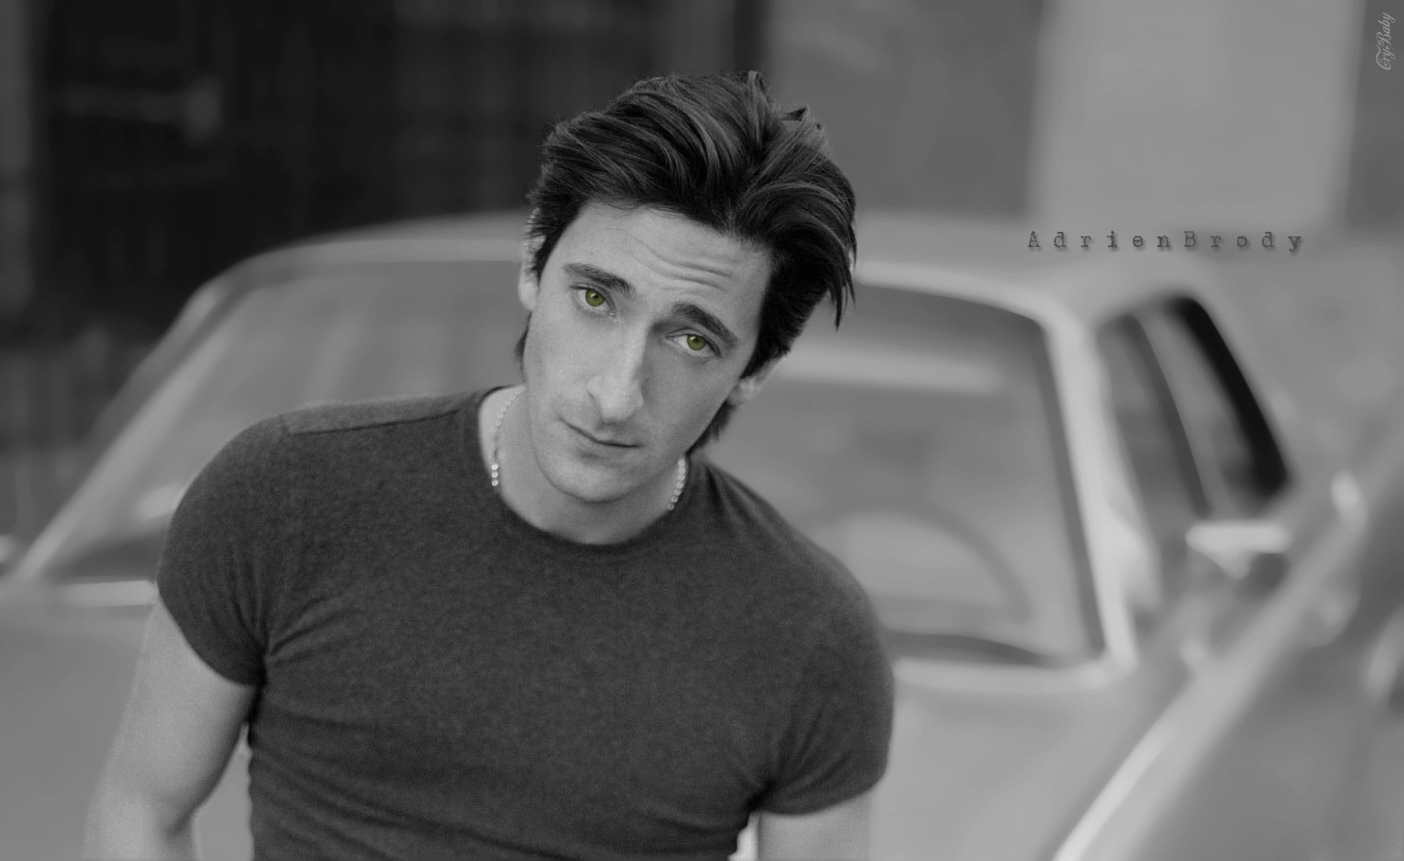 Adrien Brody The Pianist Trailer Adrien Brody The Pianist